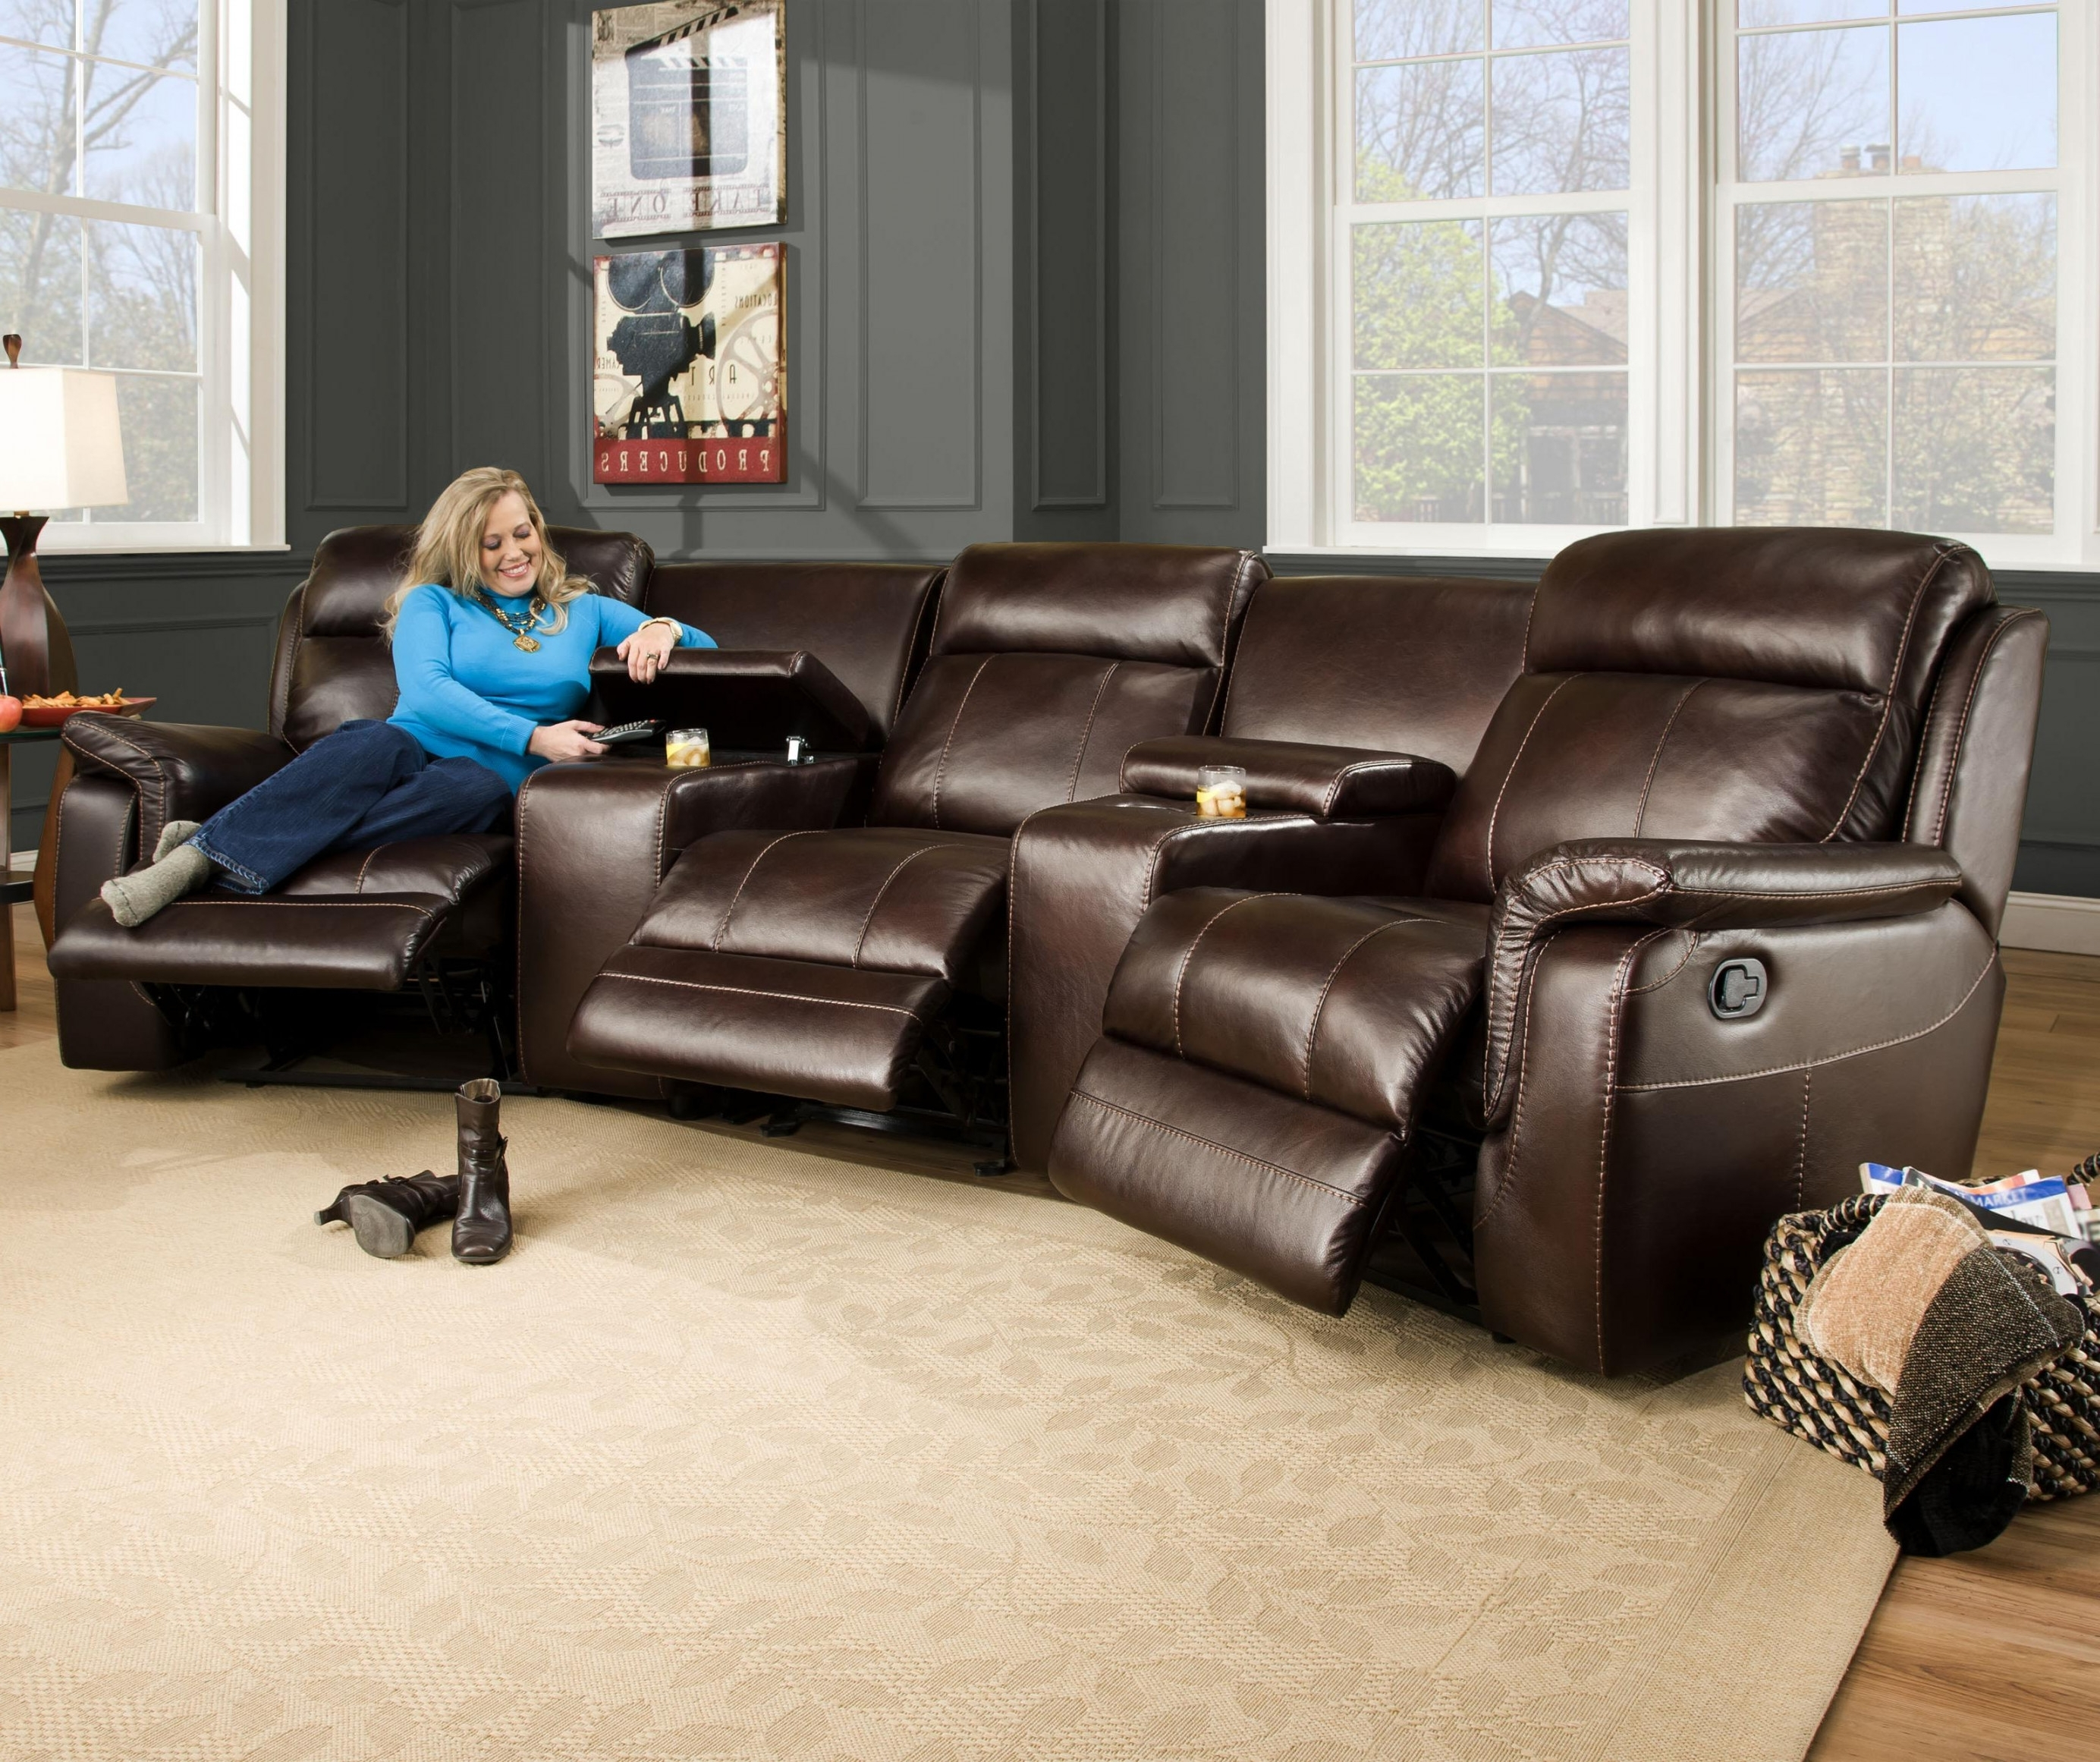 Popular Curved Sectional Sofas With Recliner Intended For Sectional Recliner Couch (View 2 of 15)